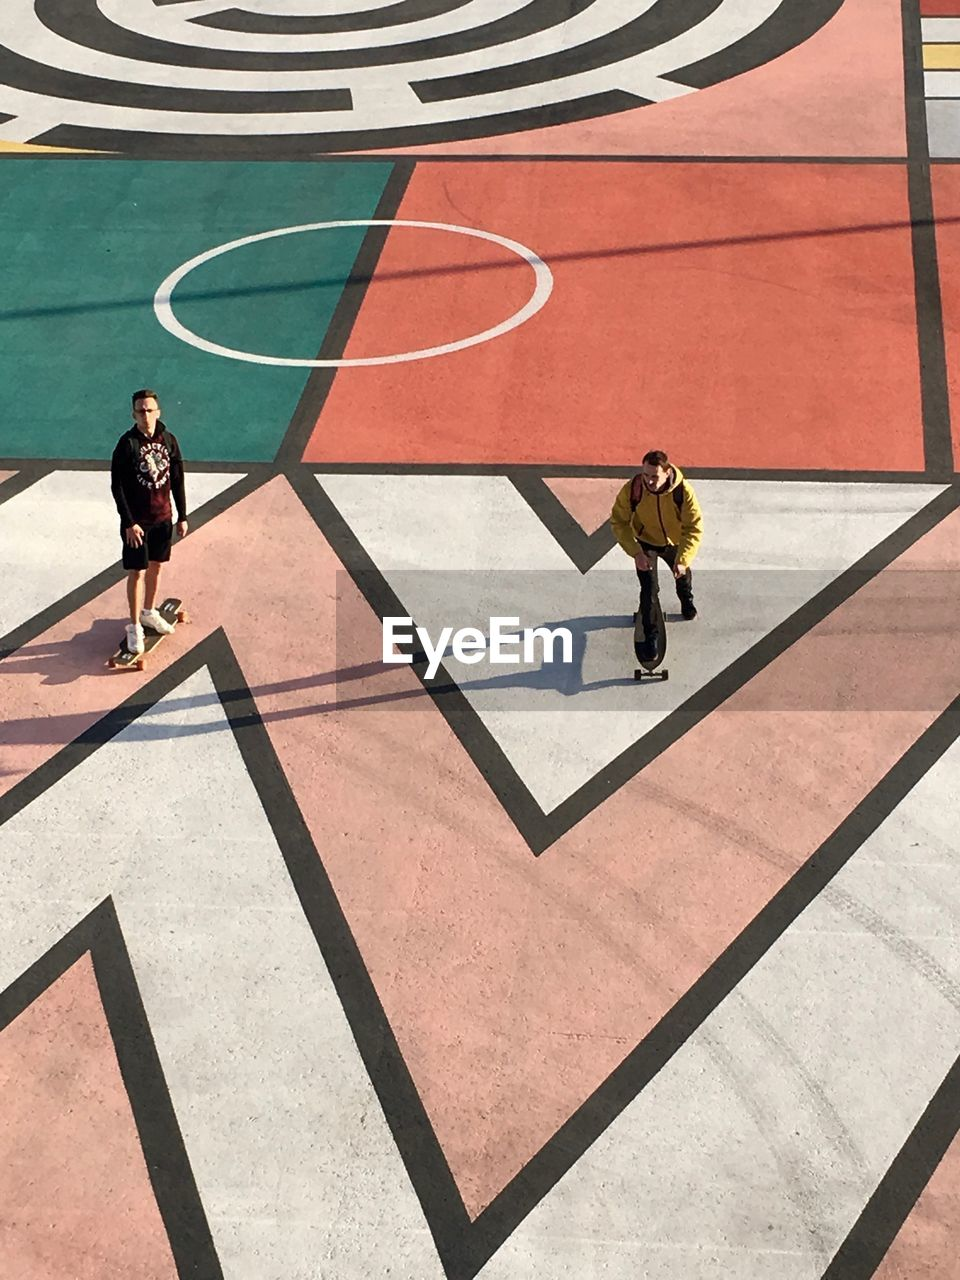 real people, high angle view, full length, shadow, sunlight, day, men, lifestyles, outdoors, court, one person, basketball - sport, adult, people